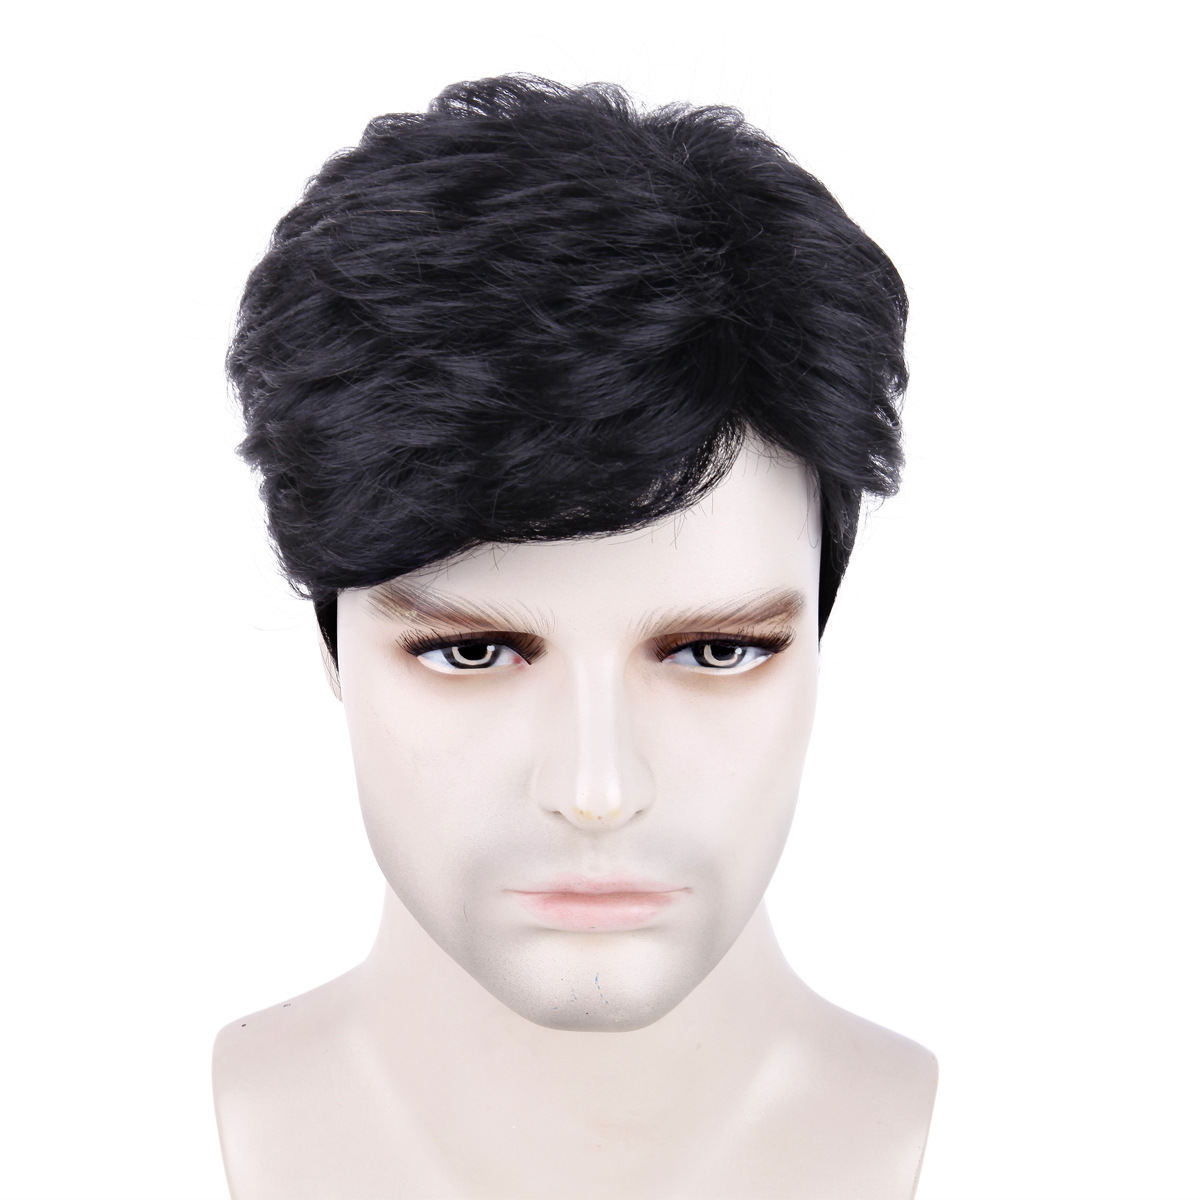 Wig male short hair men's wig black chemical fiber hair cover synthetic wigs men's wig 3